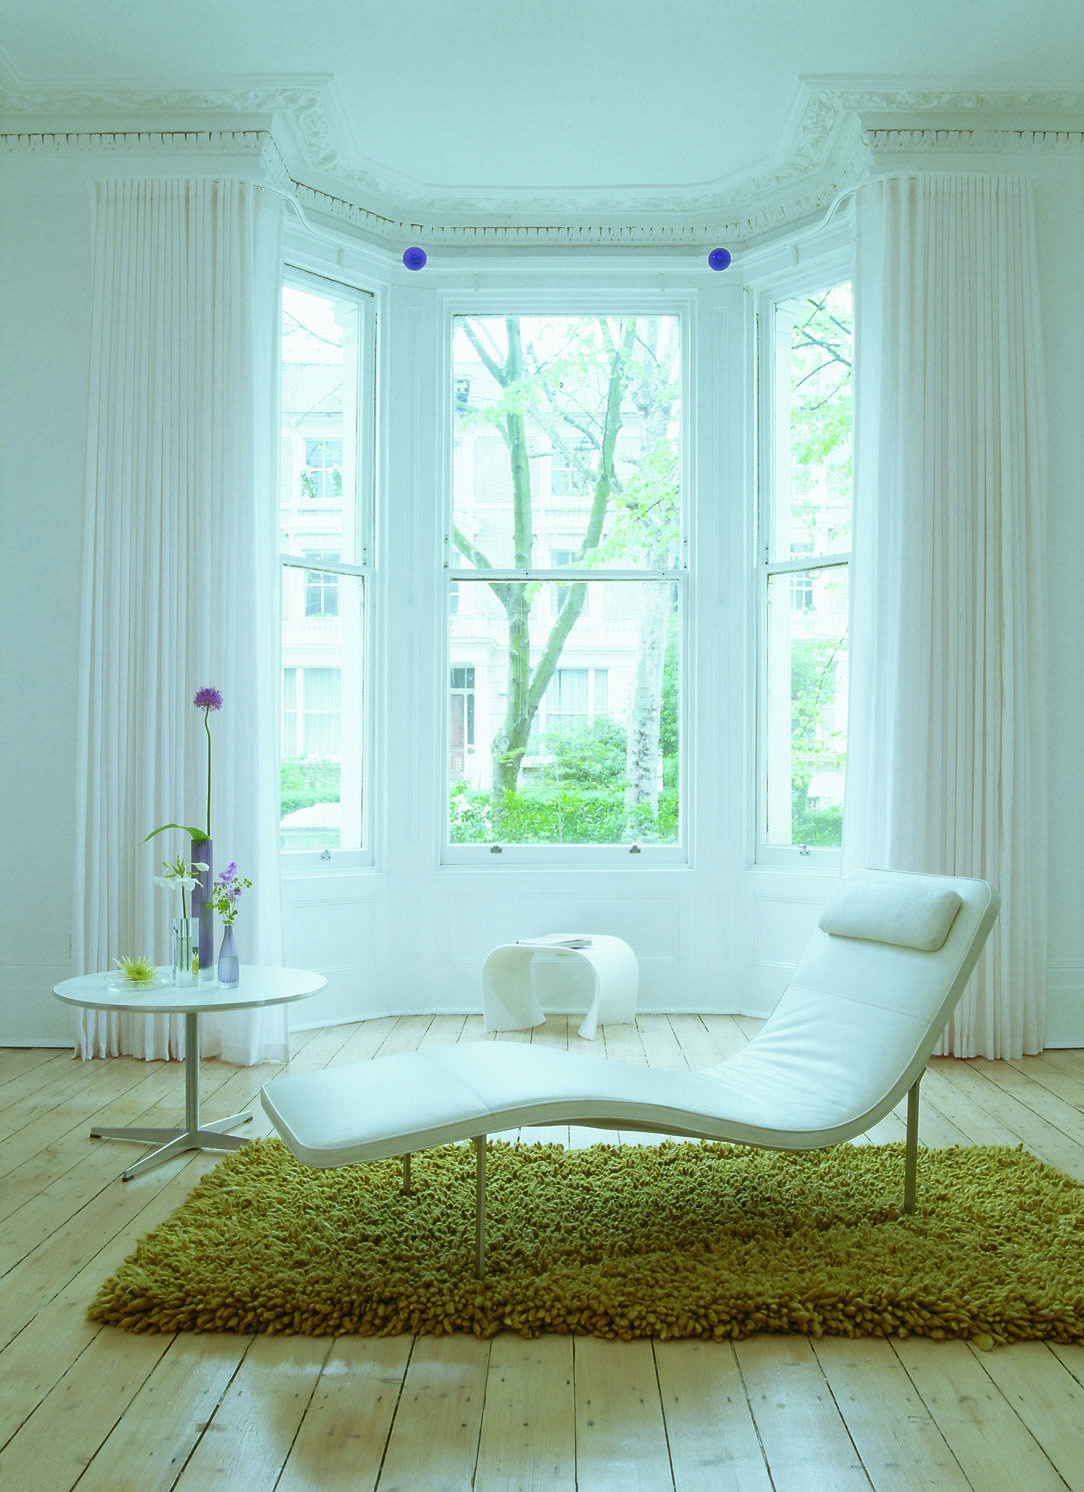 Silent Gliss Bay Track Example Elegant And Sleek Look Visit Www